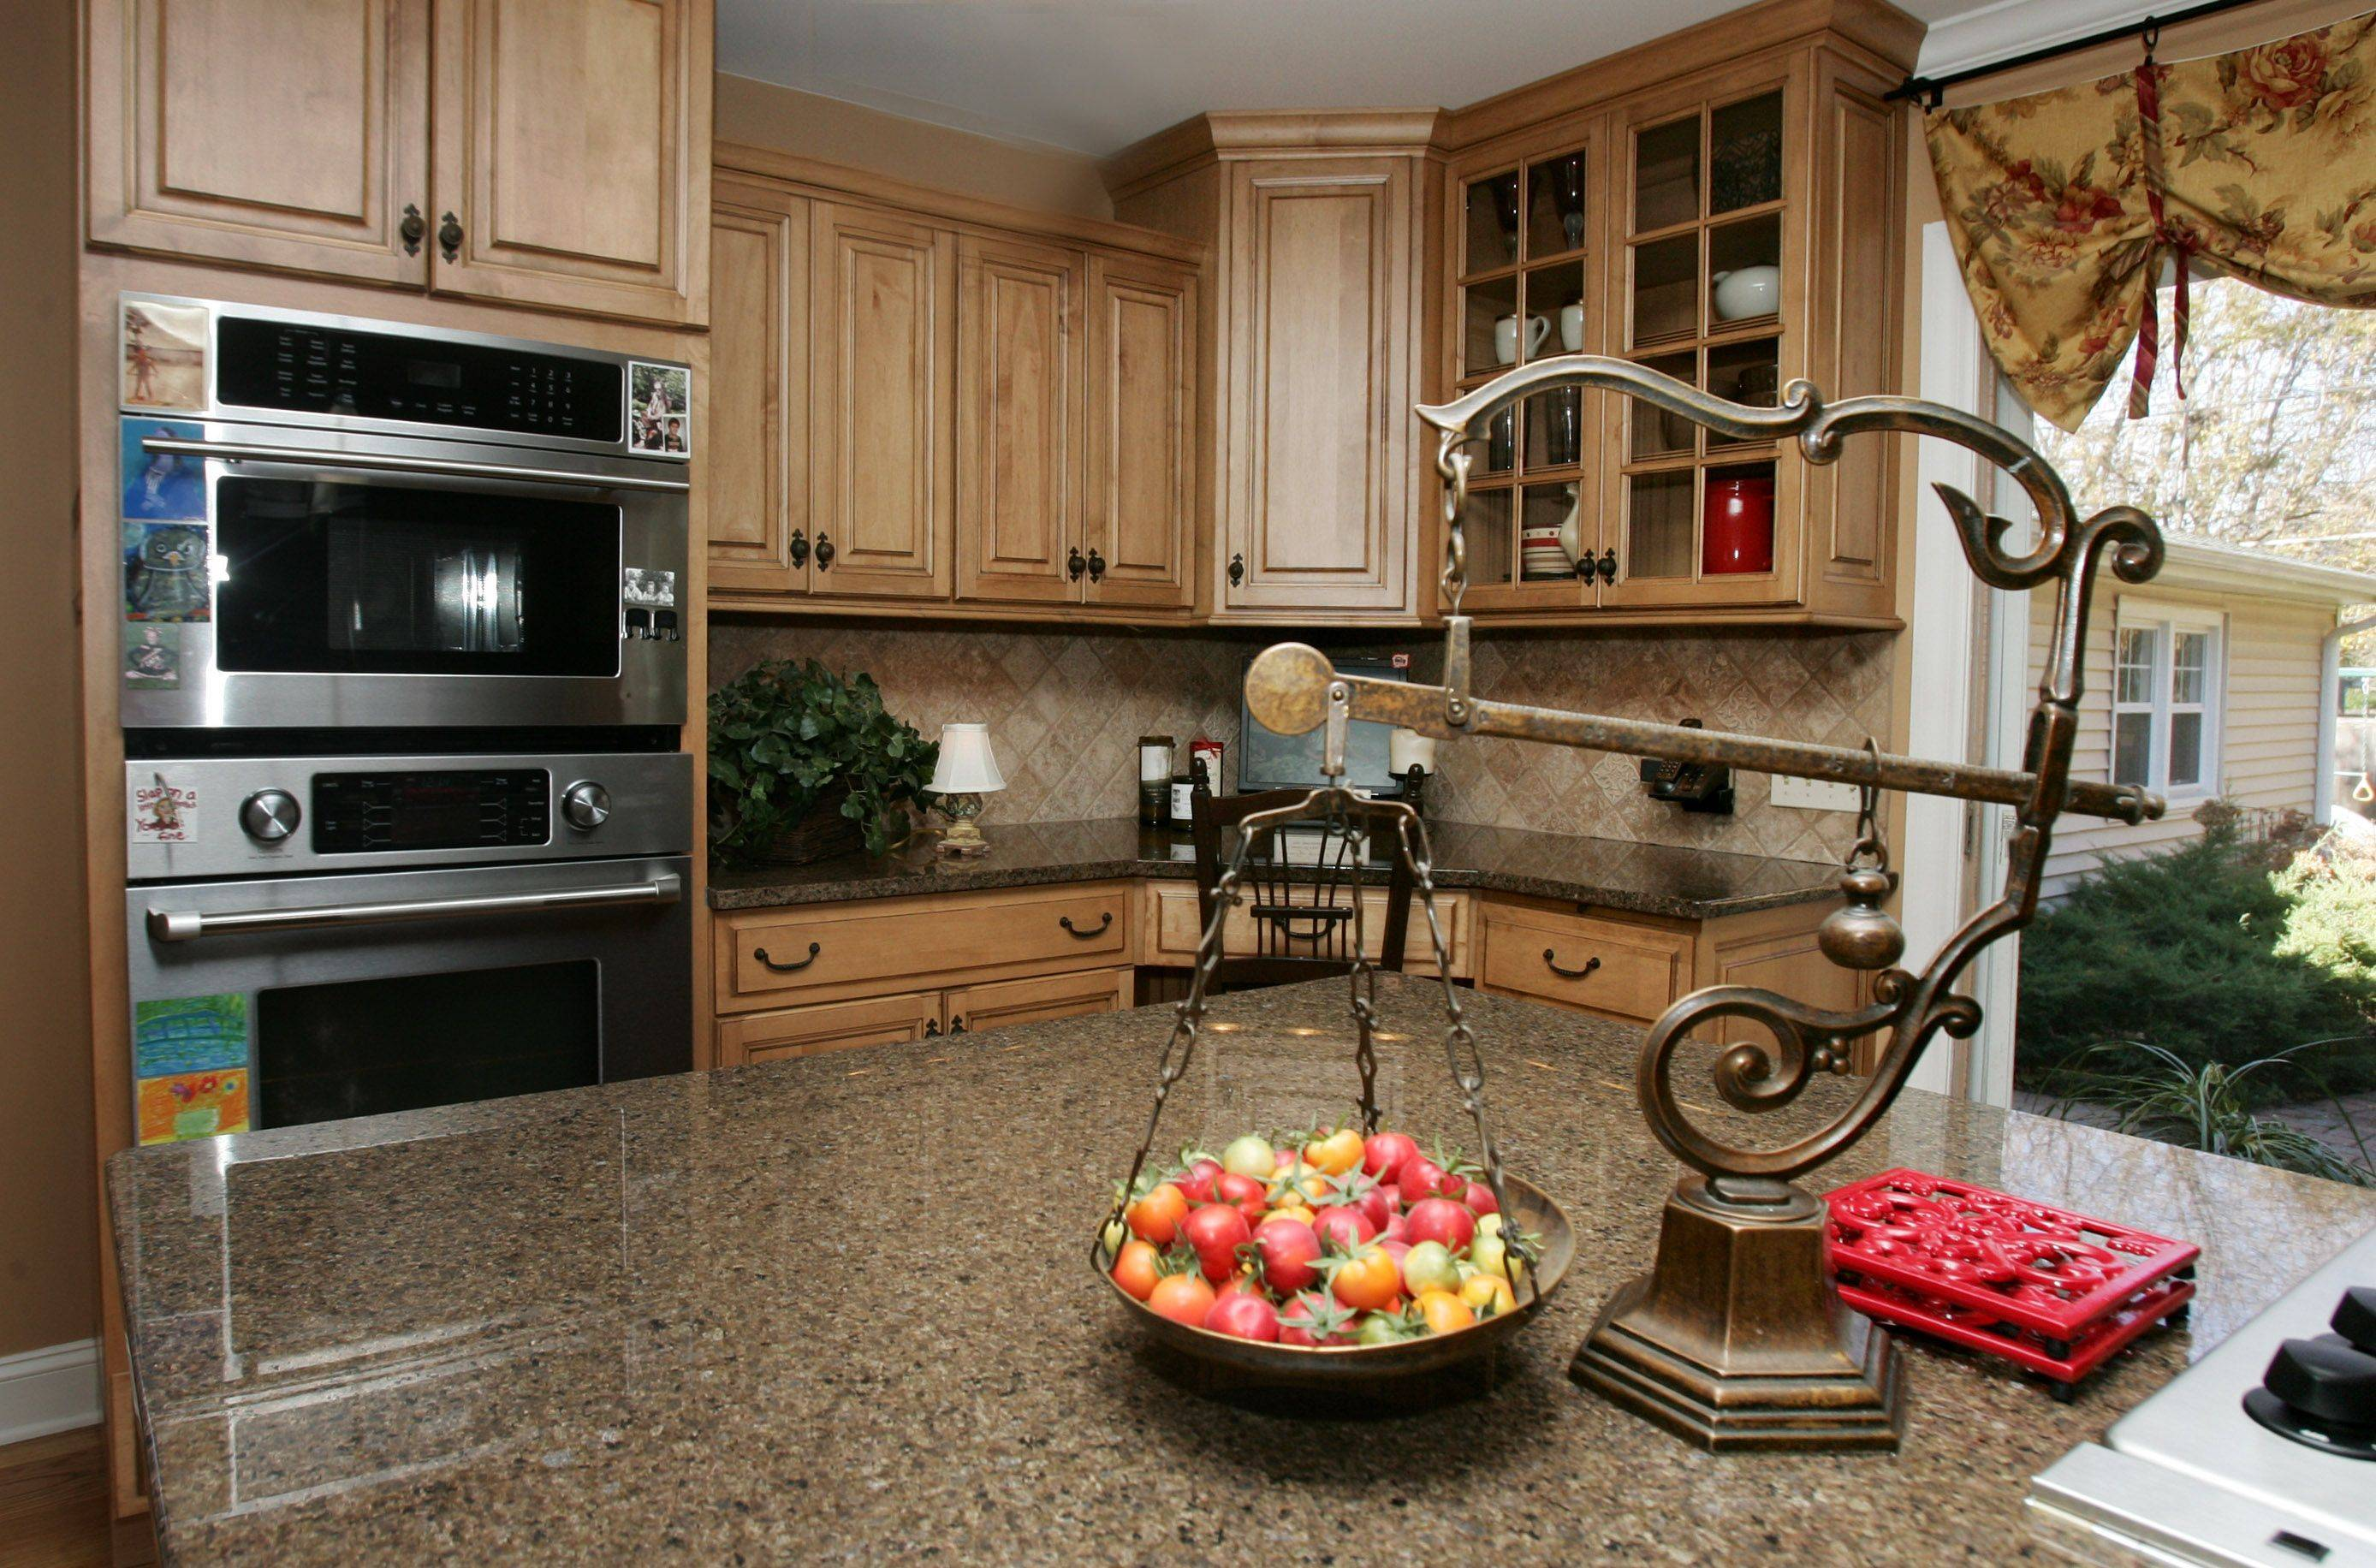 Kitchen in the Libertyville home decorated by Pam Rawles of Designs In Context.